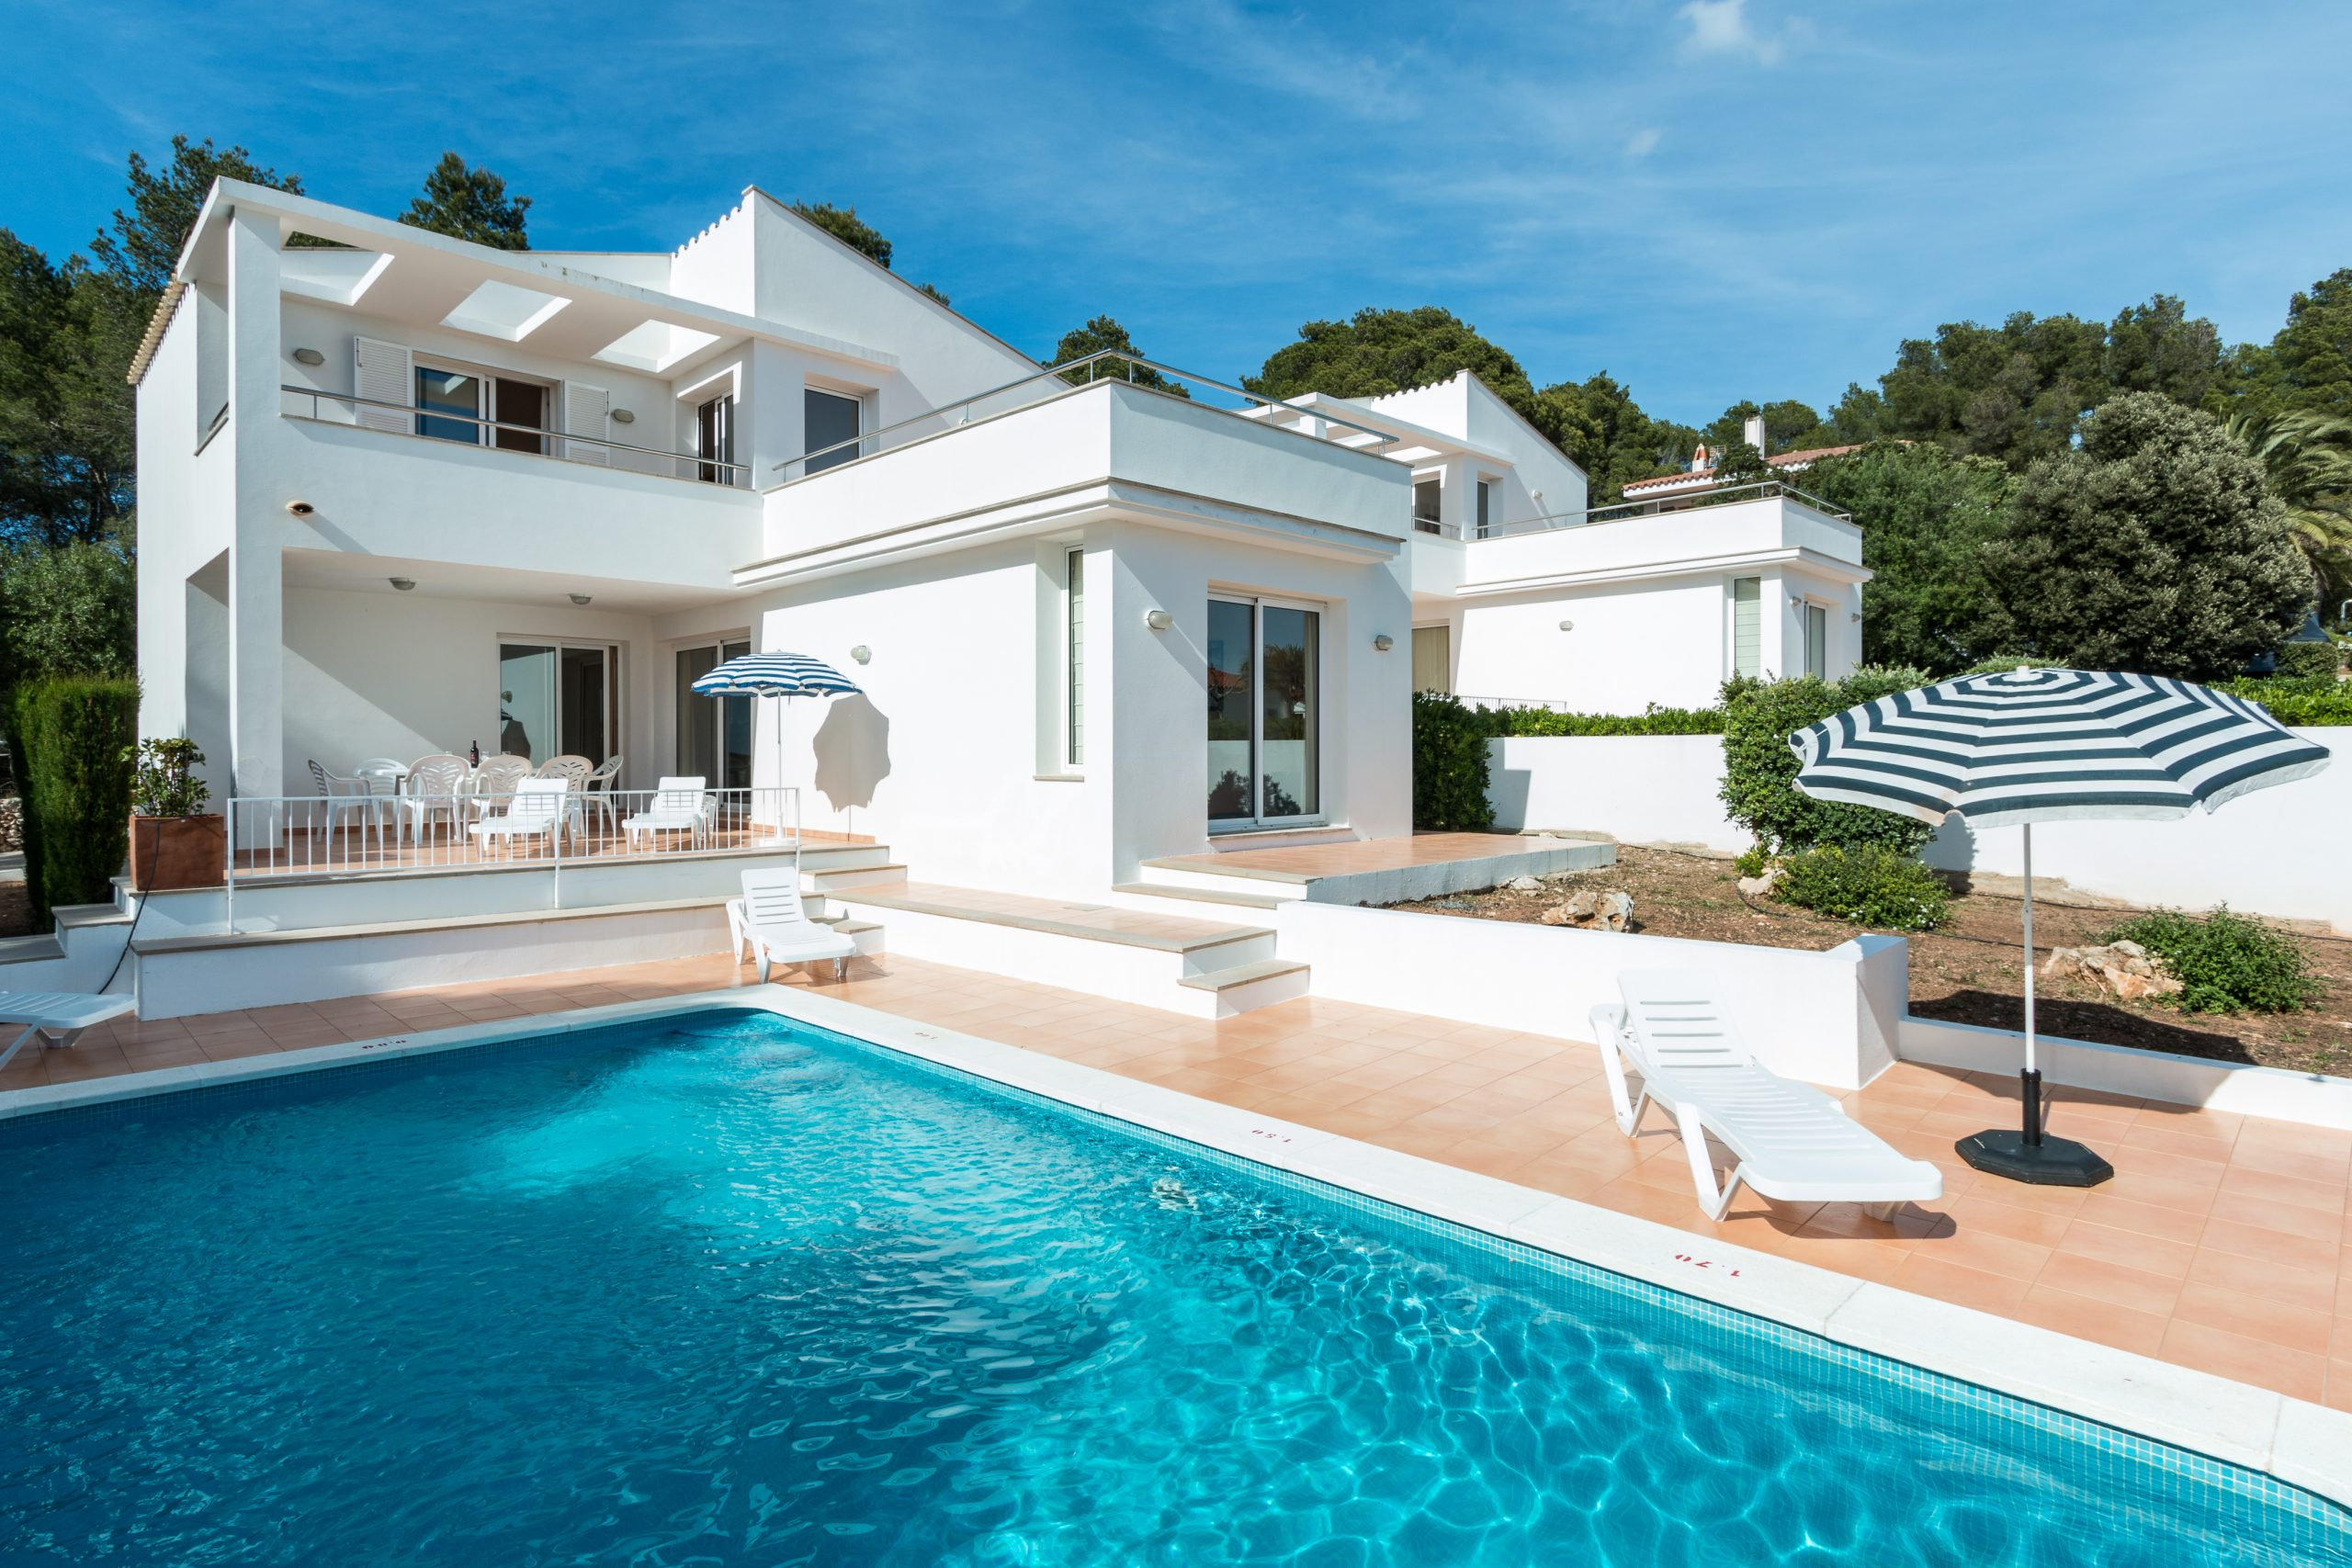 villas-in-menorca-ermita1